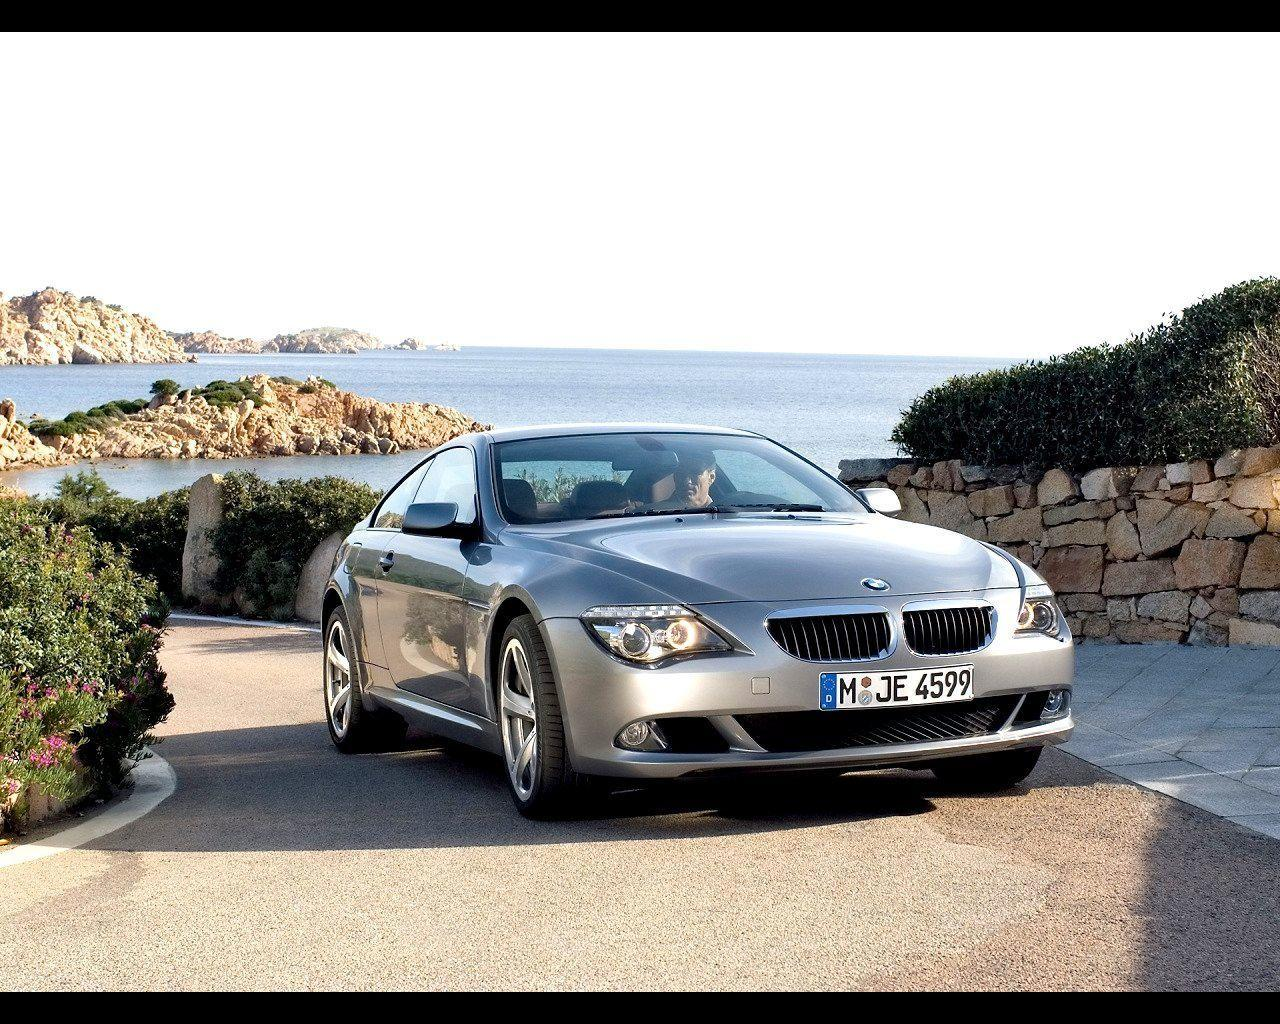 2008 BMW 6 Series Wallpaper 24 - 1280x1024